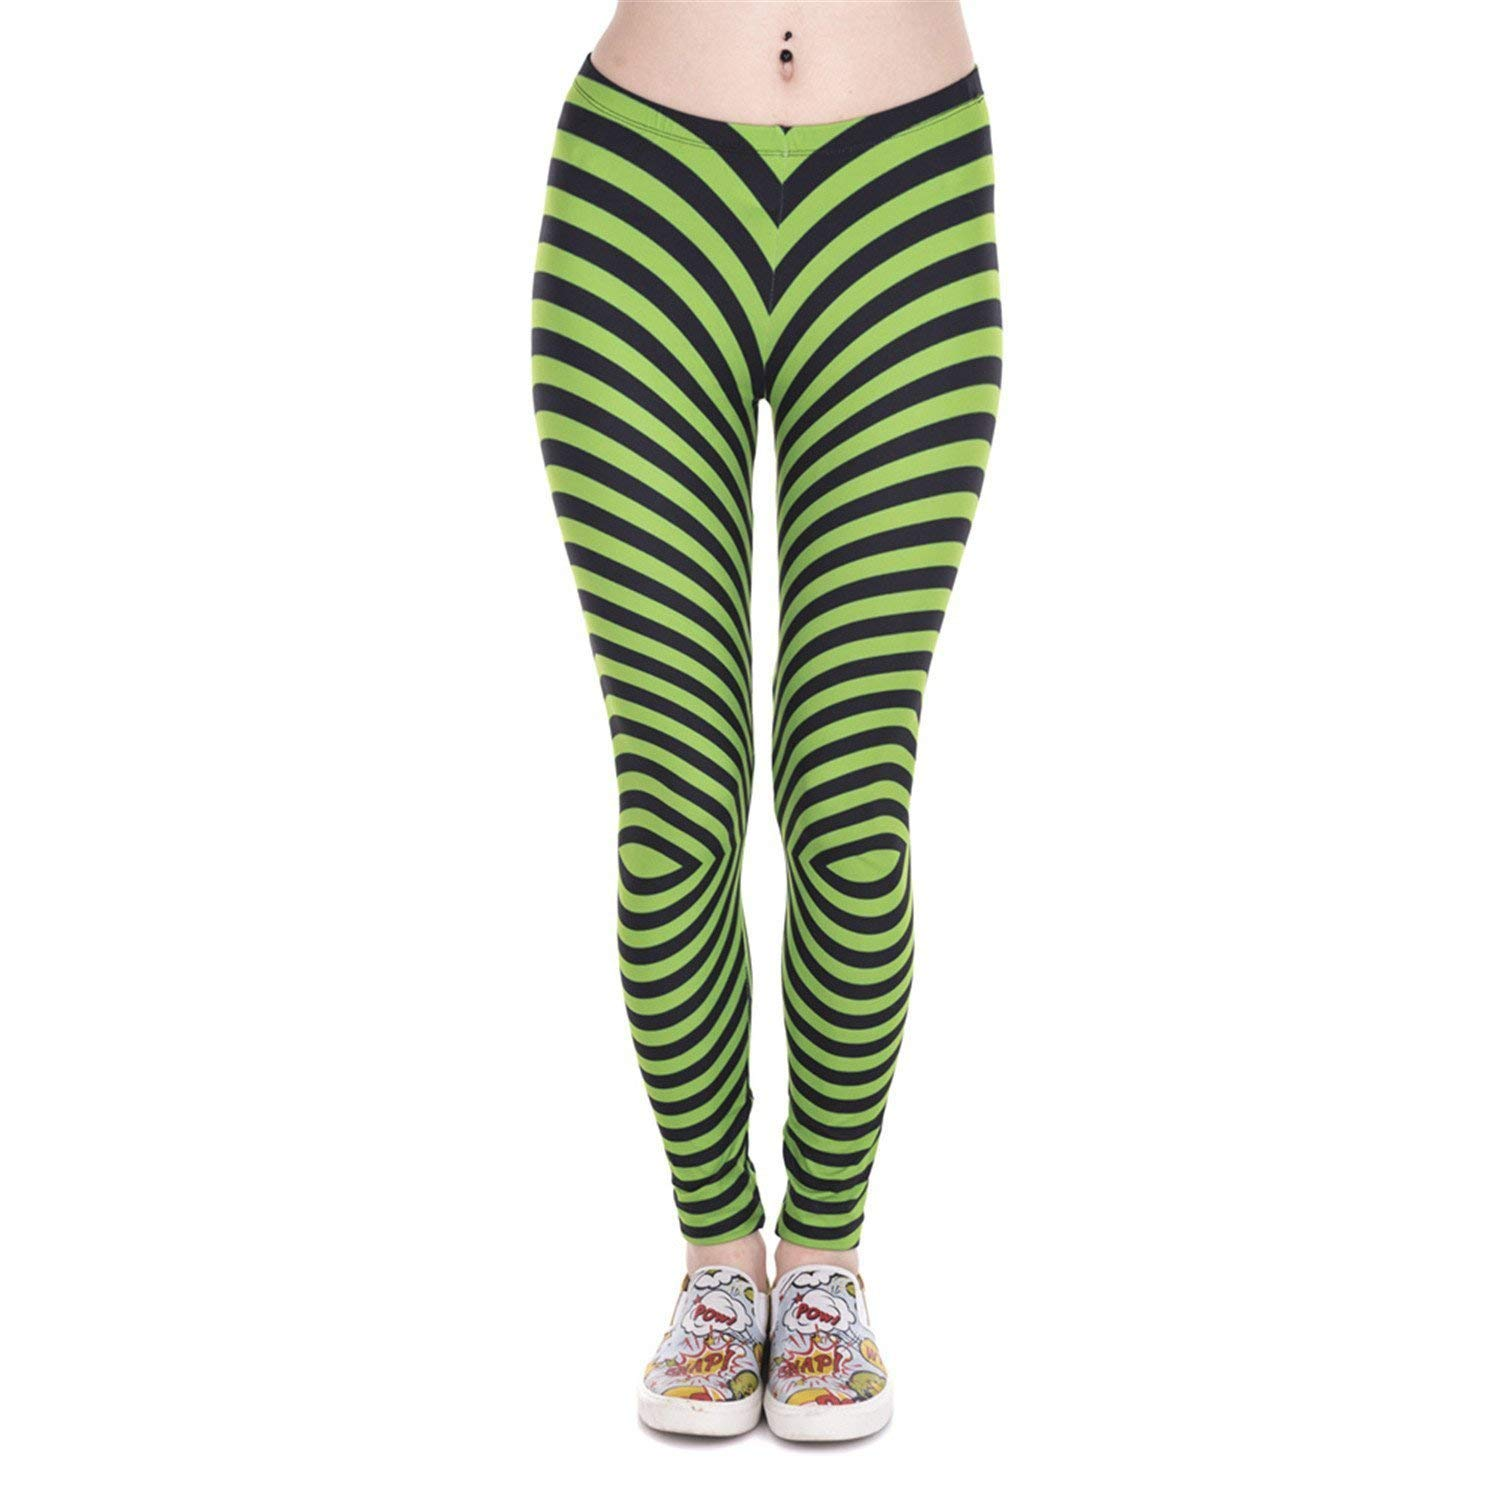 KEBINAI Athletic-leggings Kebinai Women Leggings Green with Black Stripes Printed Fitness Legging High Waist Woman Pants